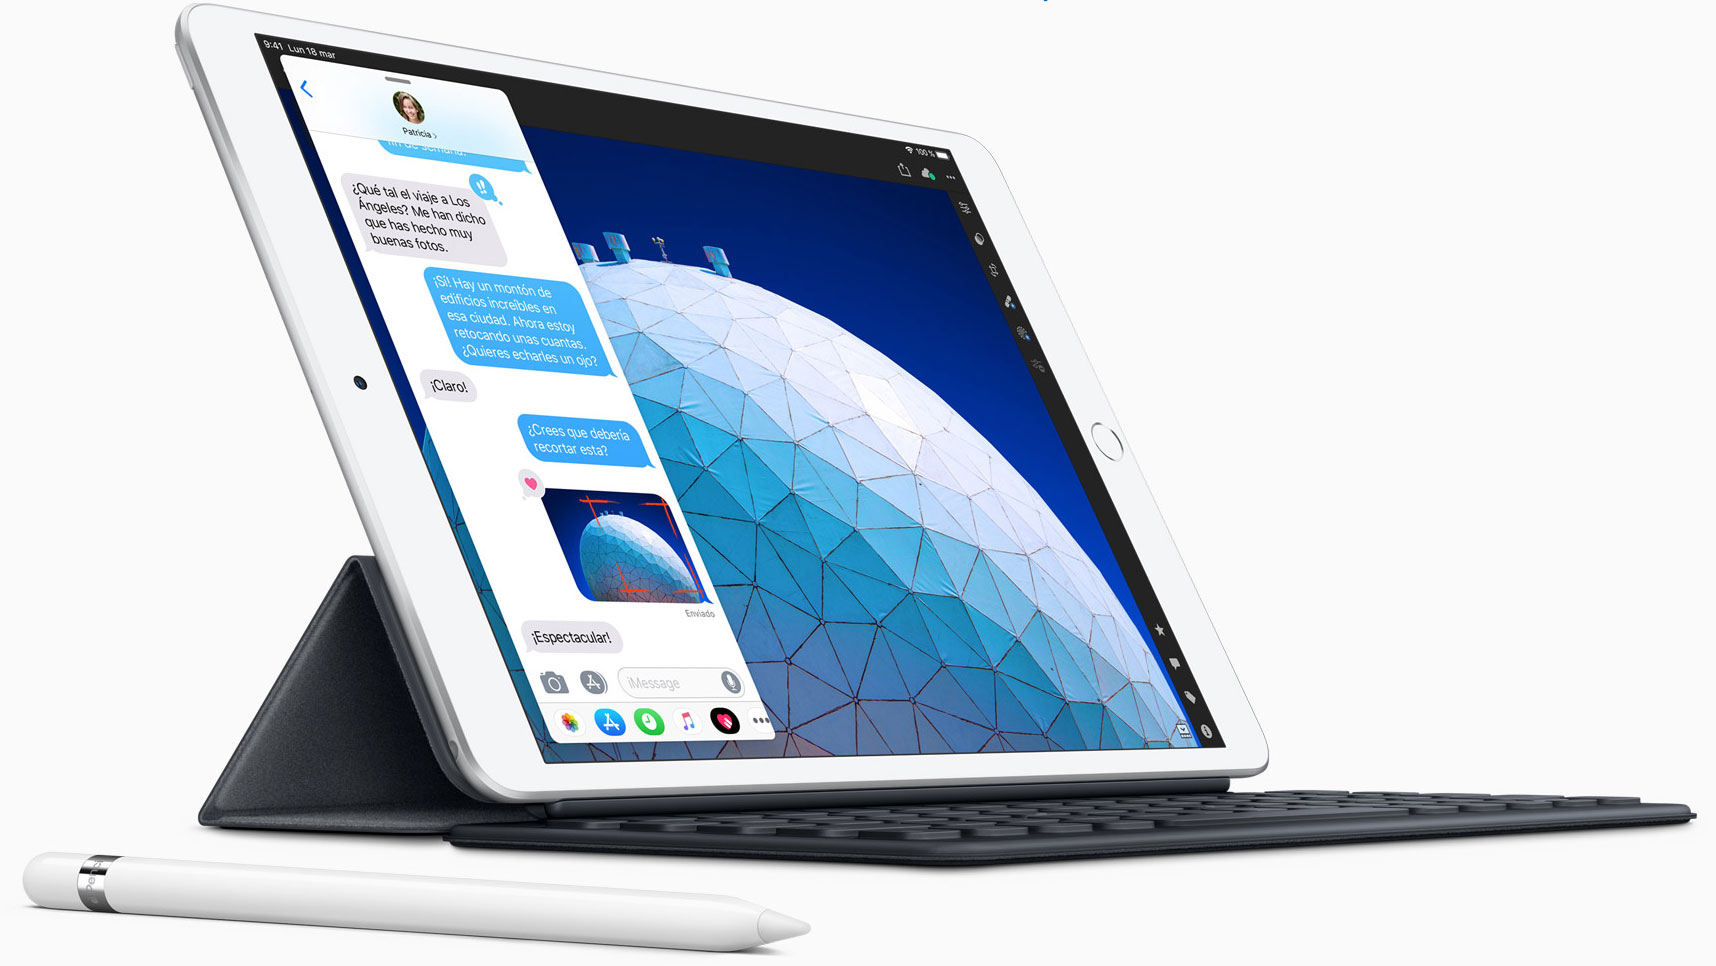 Nuevo <stro />iPad</strong>® Air de 10,5 pulgadas» width=»1716″ height=»966″ class=»aligncenter size-full wp-image-61510″ srcset=»https://ipaderos.com/wp-content/uploads/2019/03/nuevoiadparioiusdhgf.jpg 1716w, <a target=